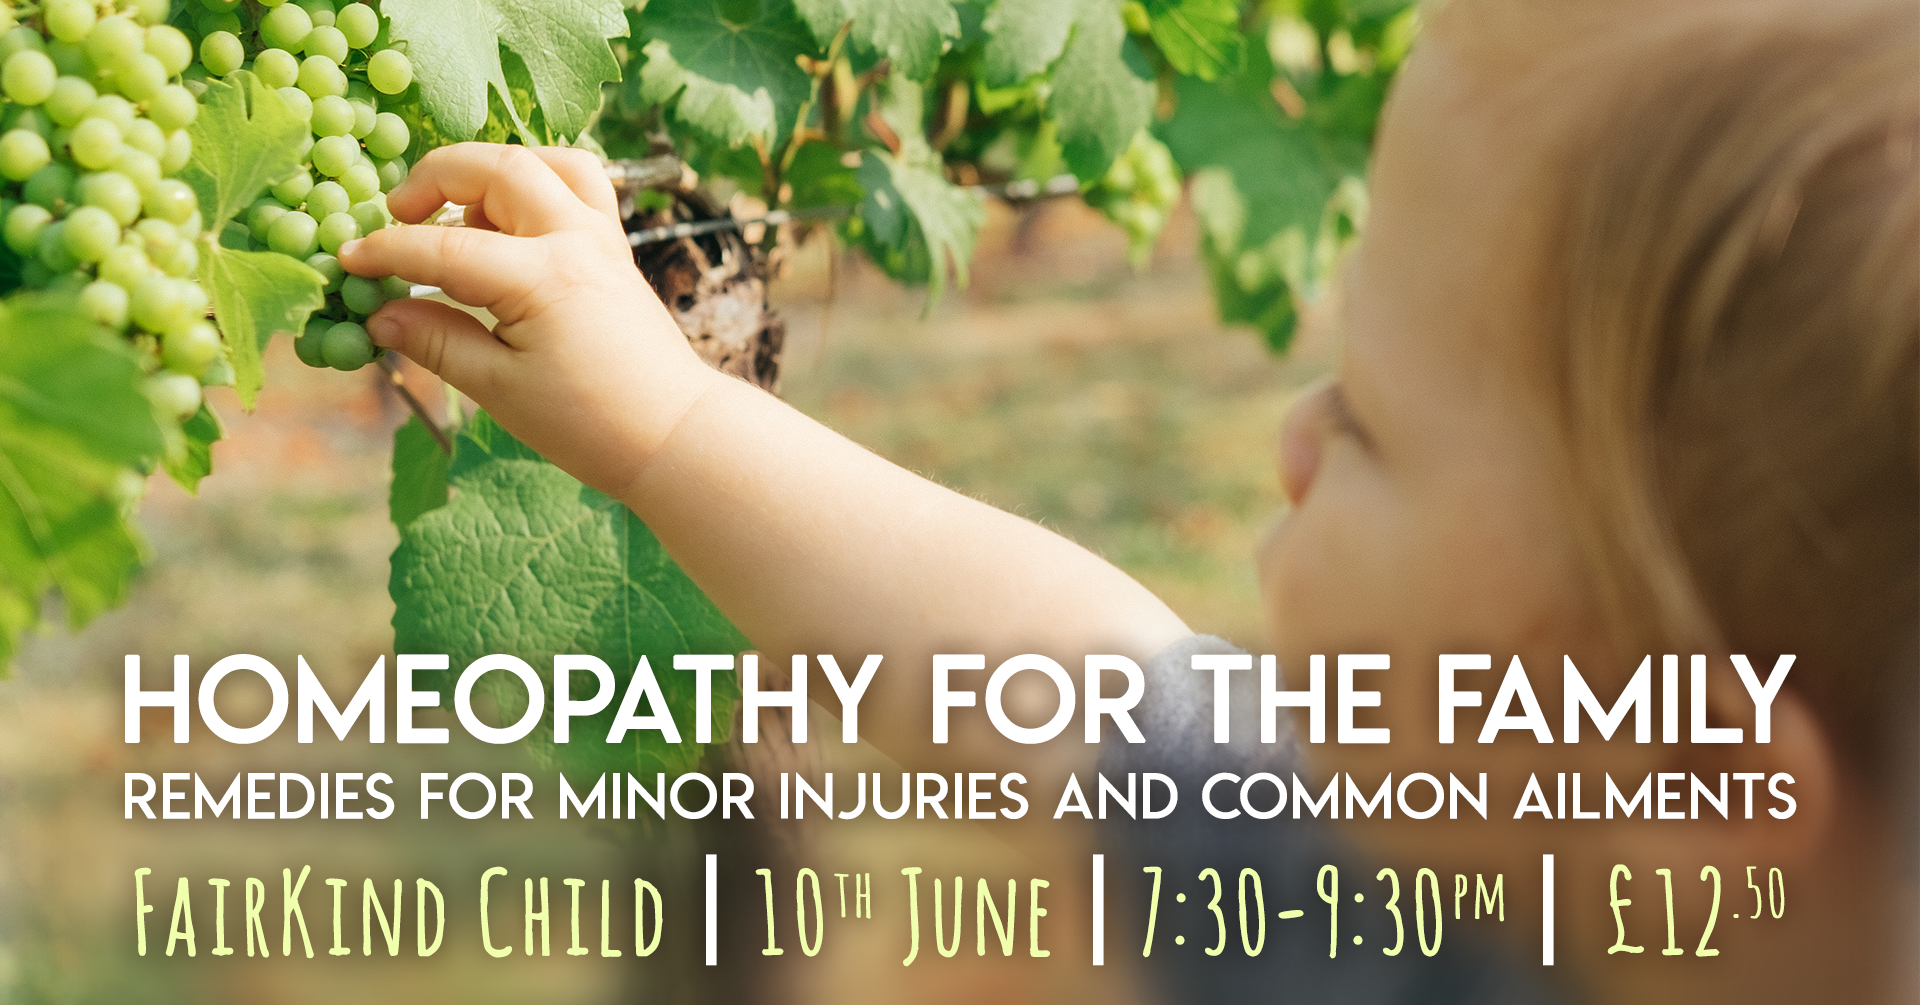 Homeopathy for the Family at FairKind Child